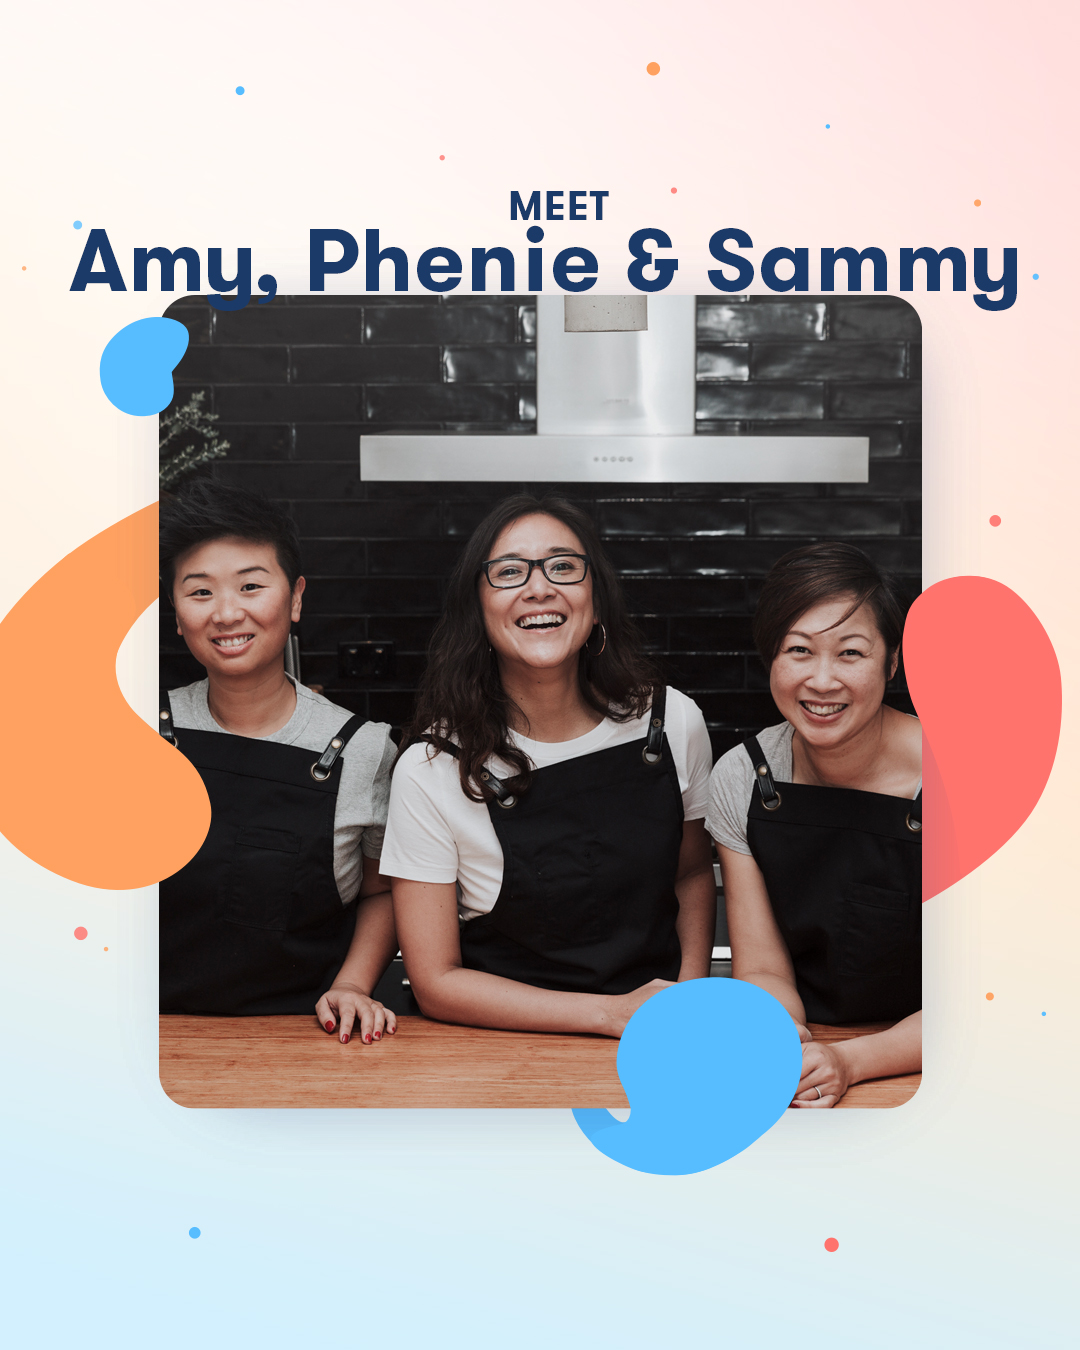 Amy, Phenie and Sammy all wearing white shirts and black aprons, smiling in a kitchen with a black tile wall.